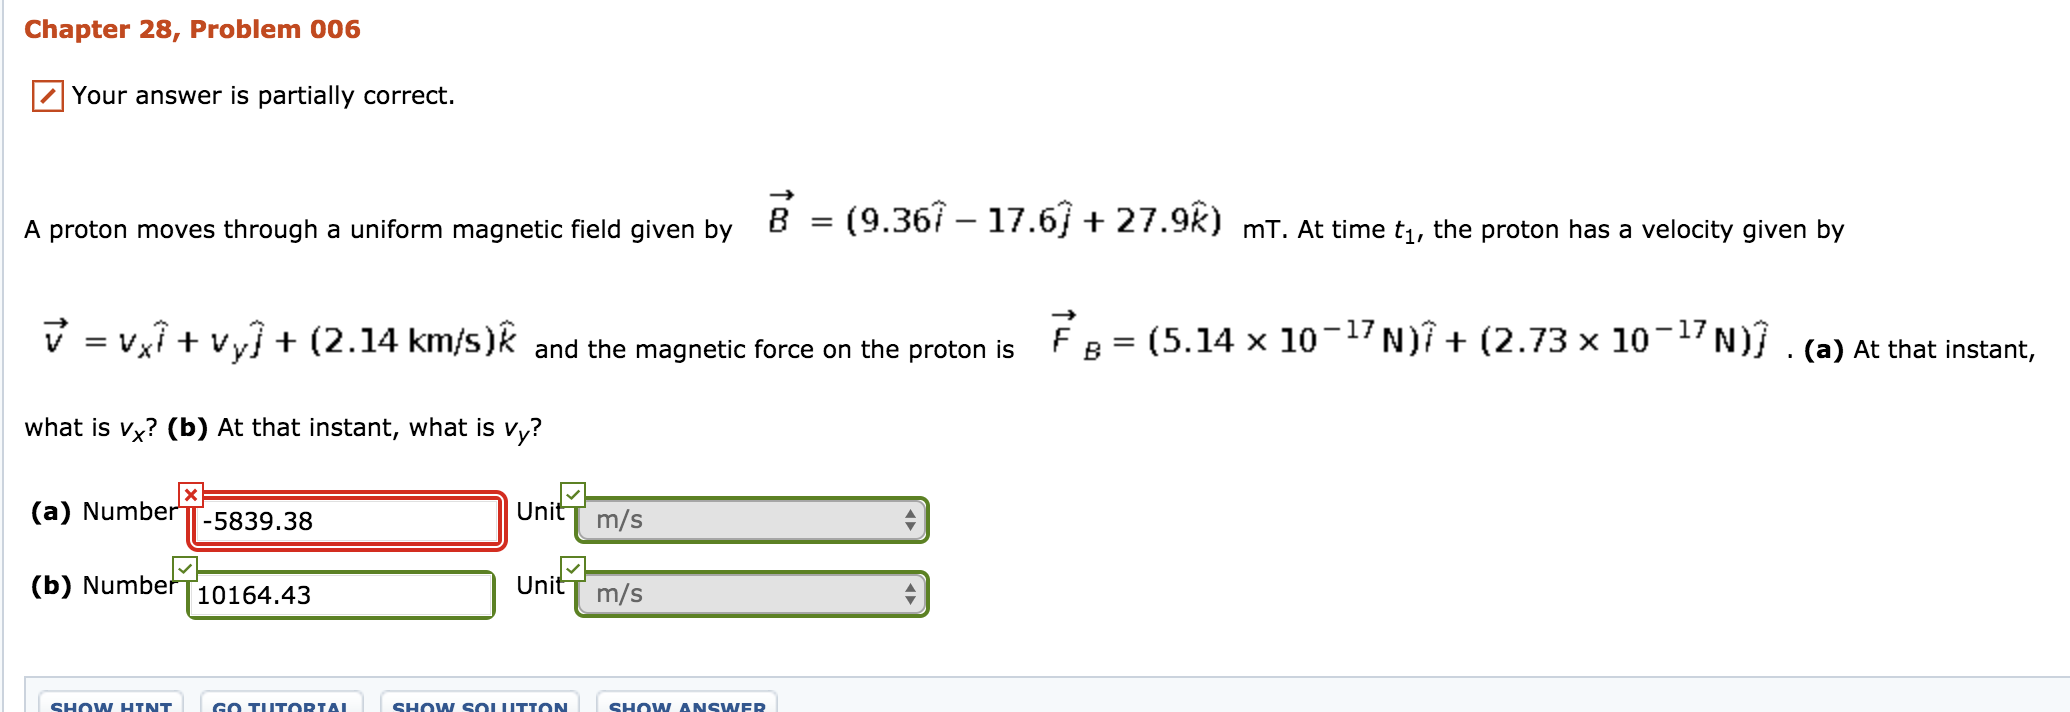 Chapter 28, Problem 006 Your answer is partially correct. A proton moves through a unform magneic tel iven by 8 - (9.367 -17.6+ 27.92) mT. At time t,th rocon has a veloct iven by mT. At time t1, the proton has a velocity given by FB= (5.14×10-17 N)1+(2.73x10-17N/ v-vx1+Vy] + (2.14 km/s)k and the magnetic force on the proton is what is vx? (b) At that instant, what is vy? (a) NumberTT-5839.38 (b) Numbef T10164.43 (a) At that instant, UnitT m/s UnitT m/s SHOW ANSNER SHOW SOUITTON SHOW HTNT